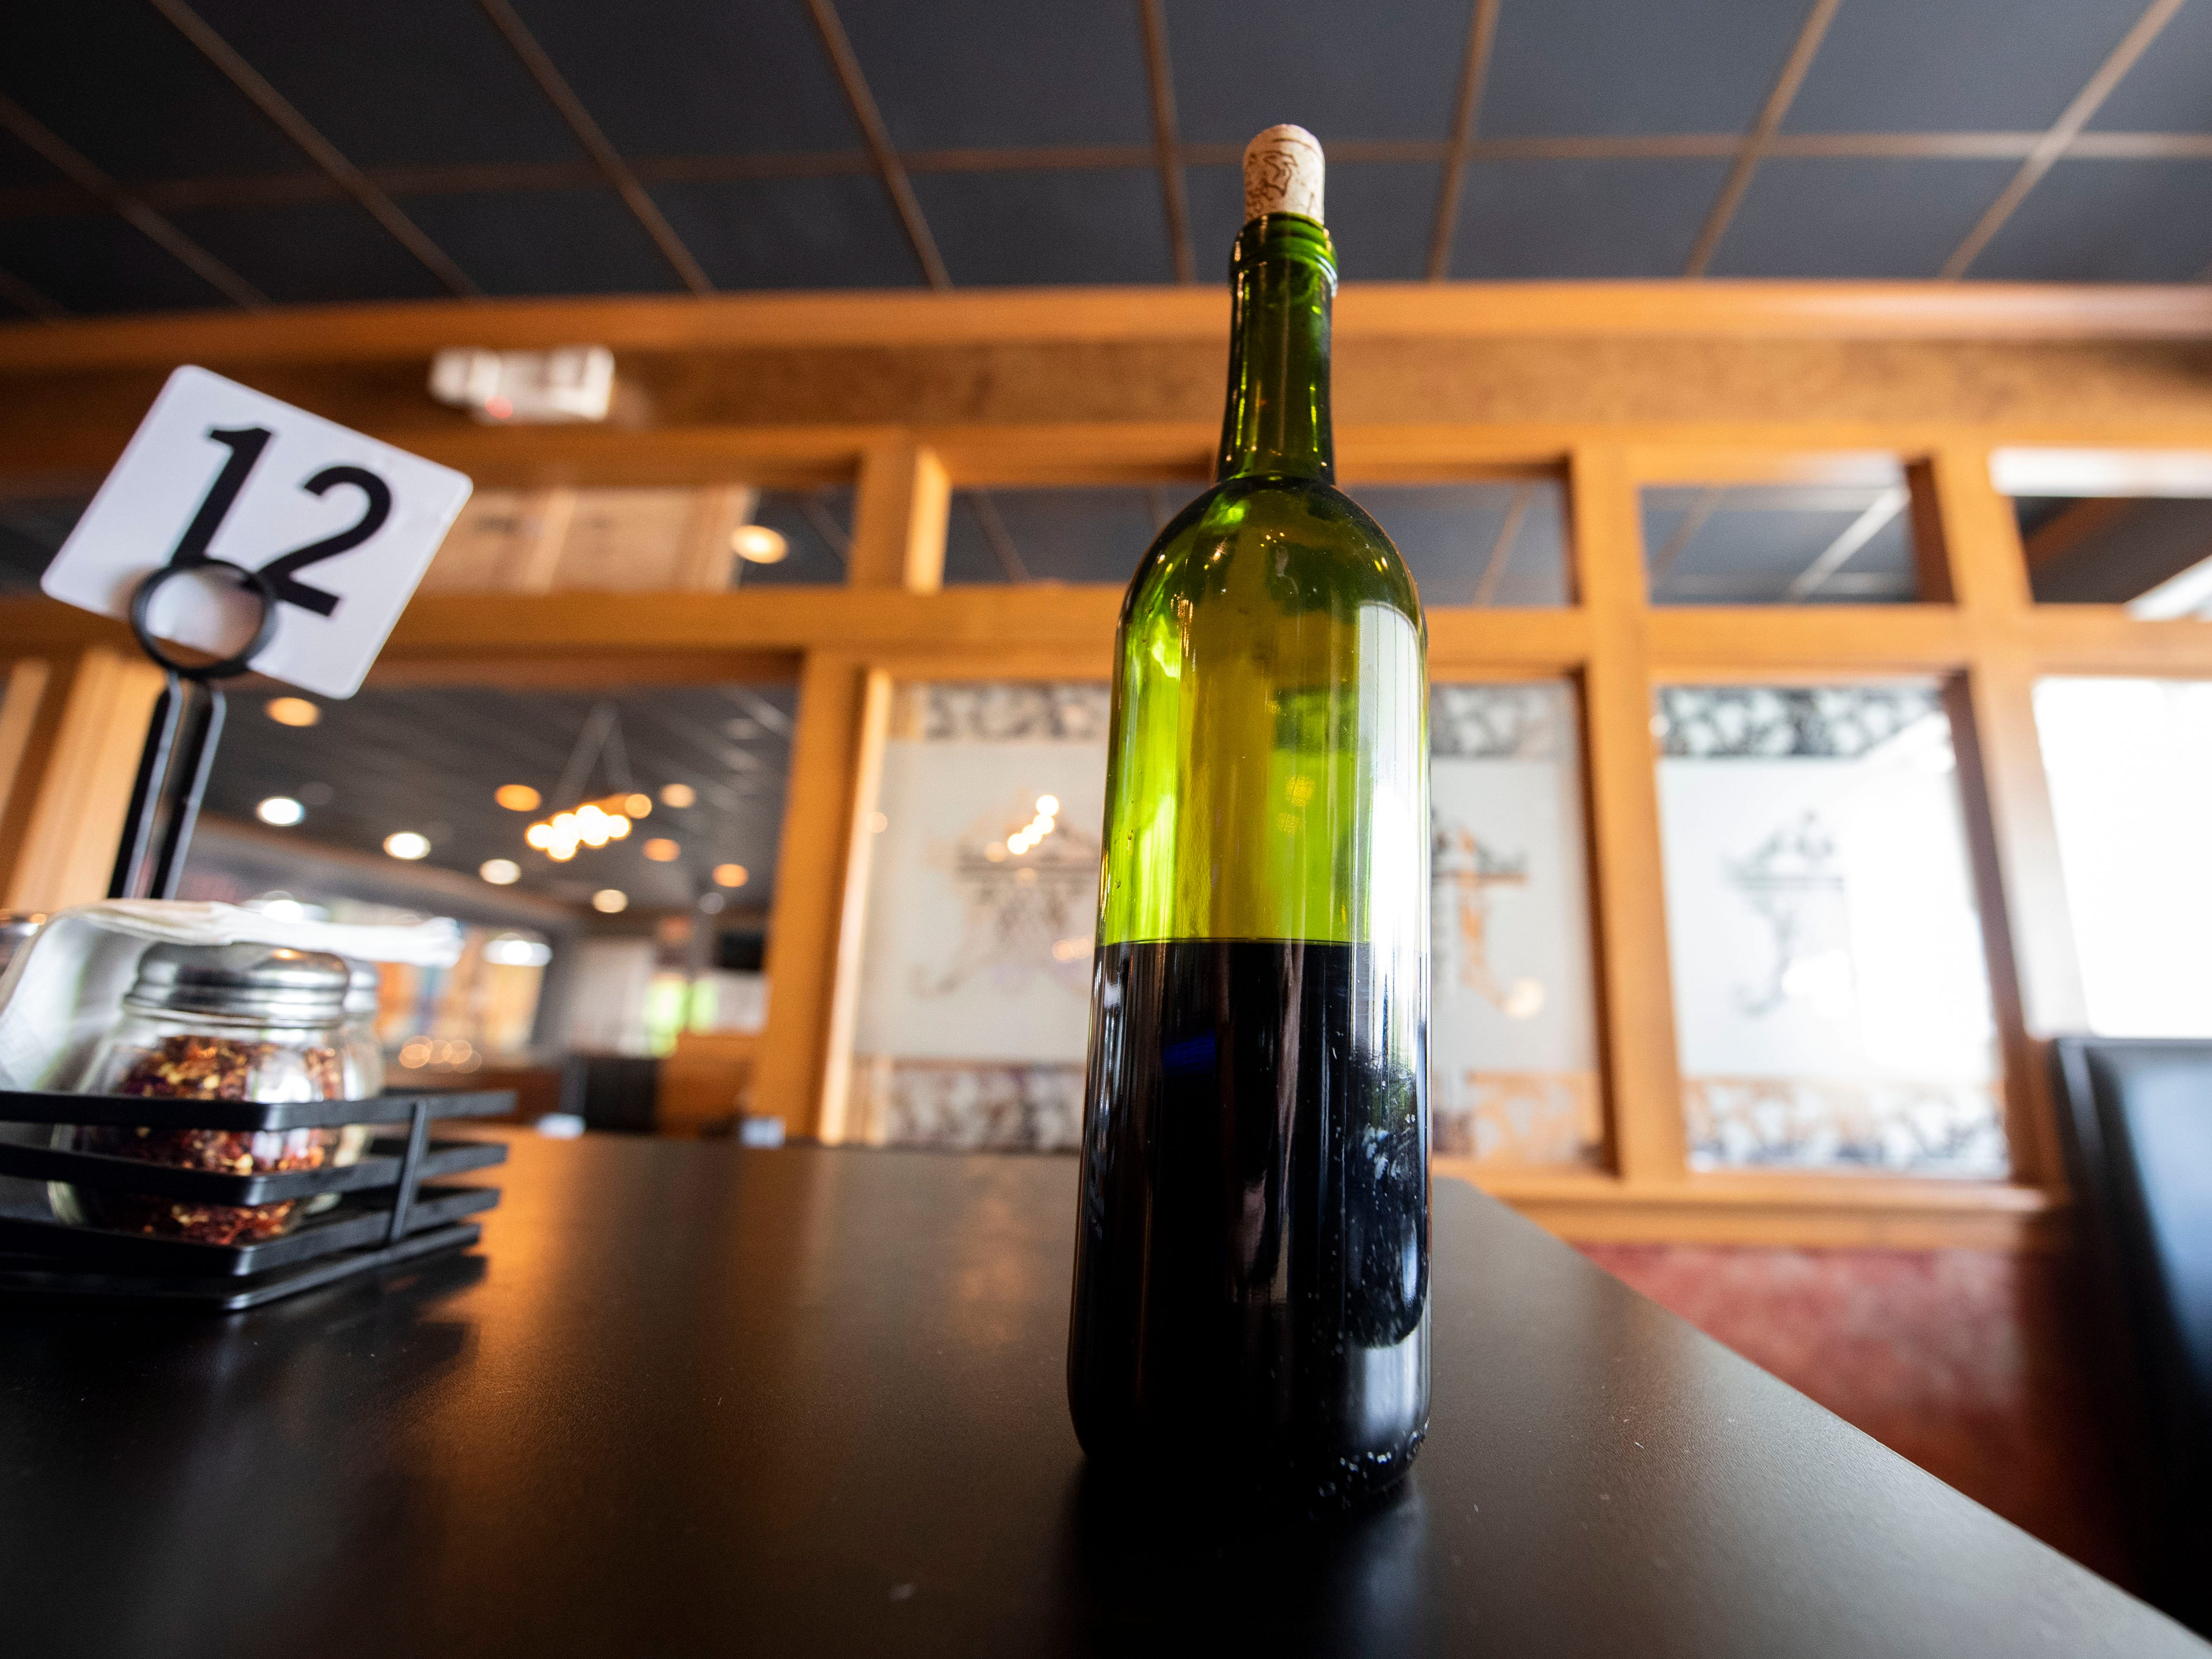 A bottle of Wood Fire Italian Grill's wine sits on a table in the new bar area, Wednesday, Oct. 10, 2018. The restaurant, which opened at the beginning of this year, has added on a bar, where they make their own wine to serve.